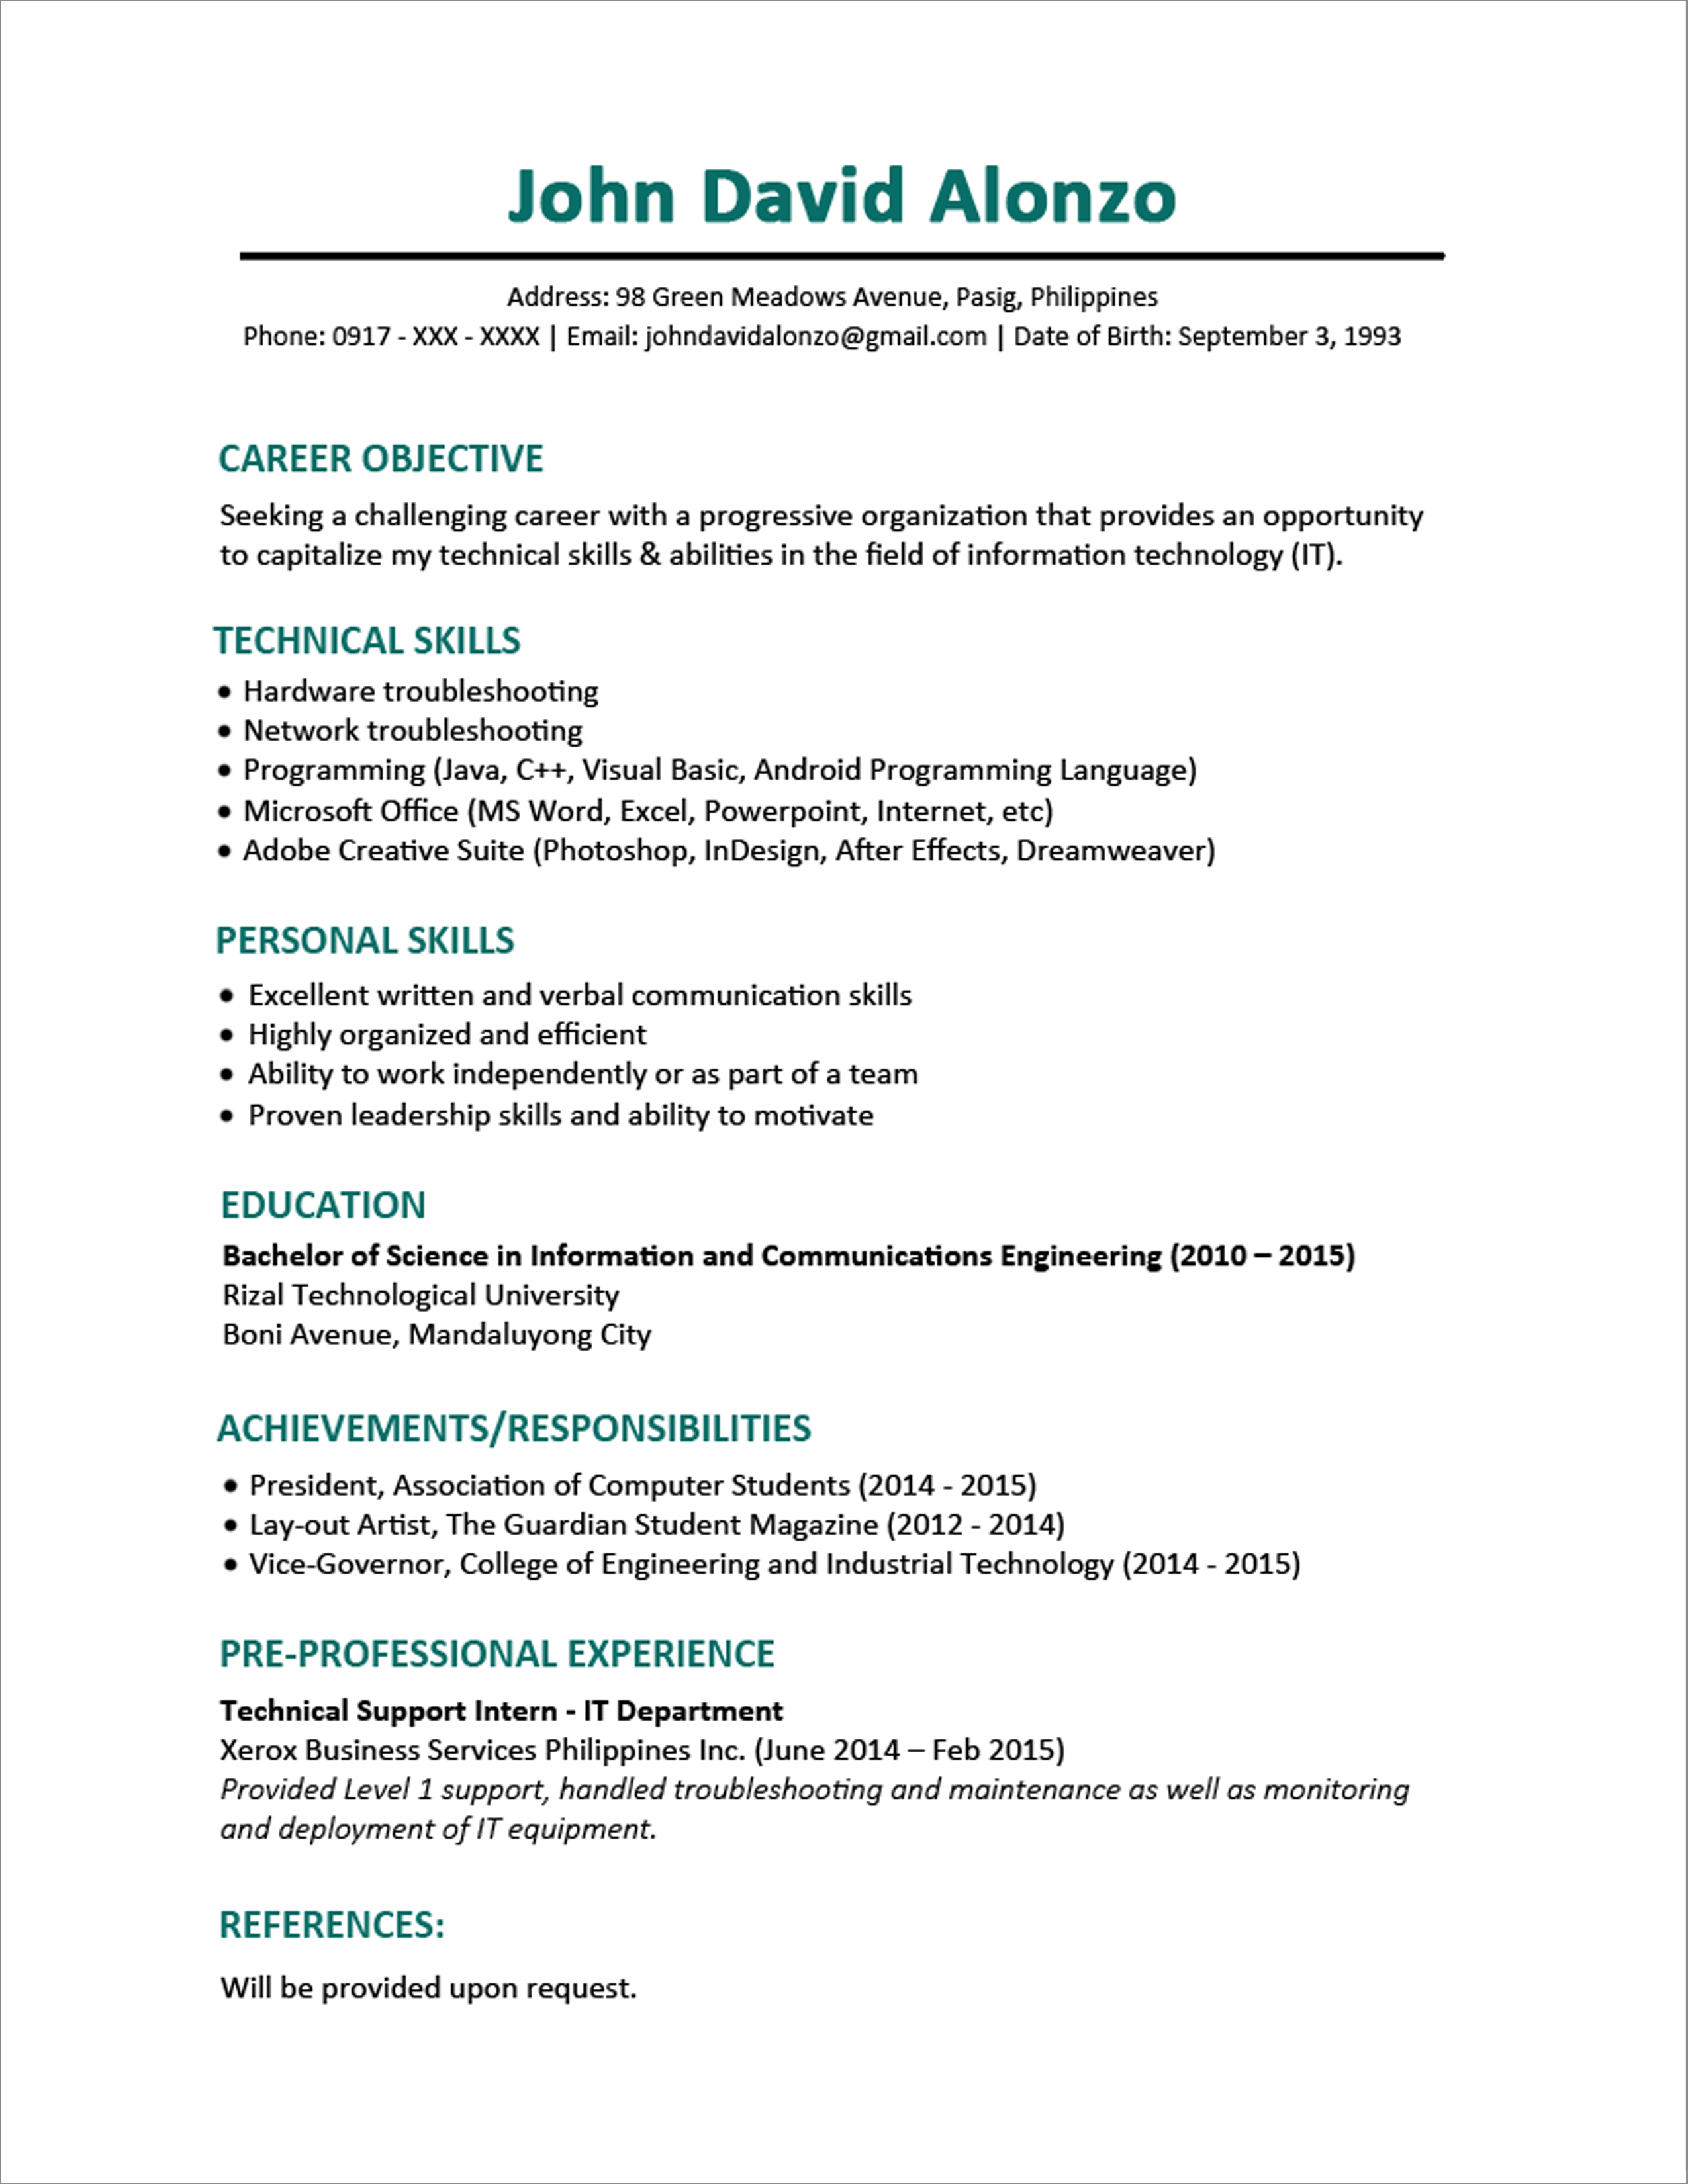 Resume Templates You Can Download   Resume Examples